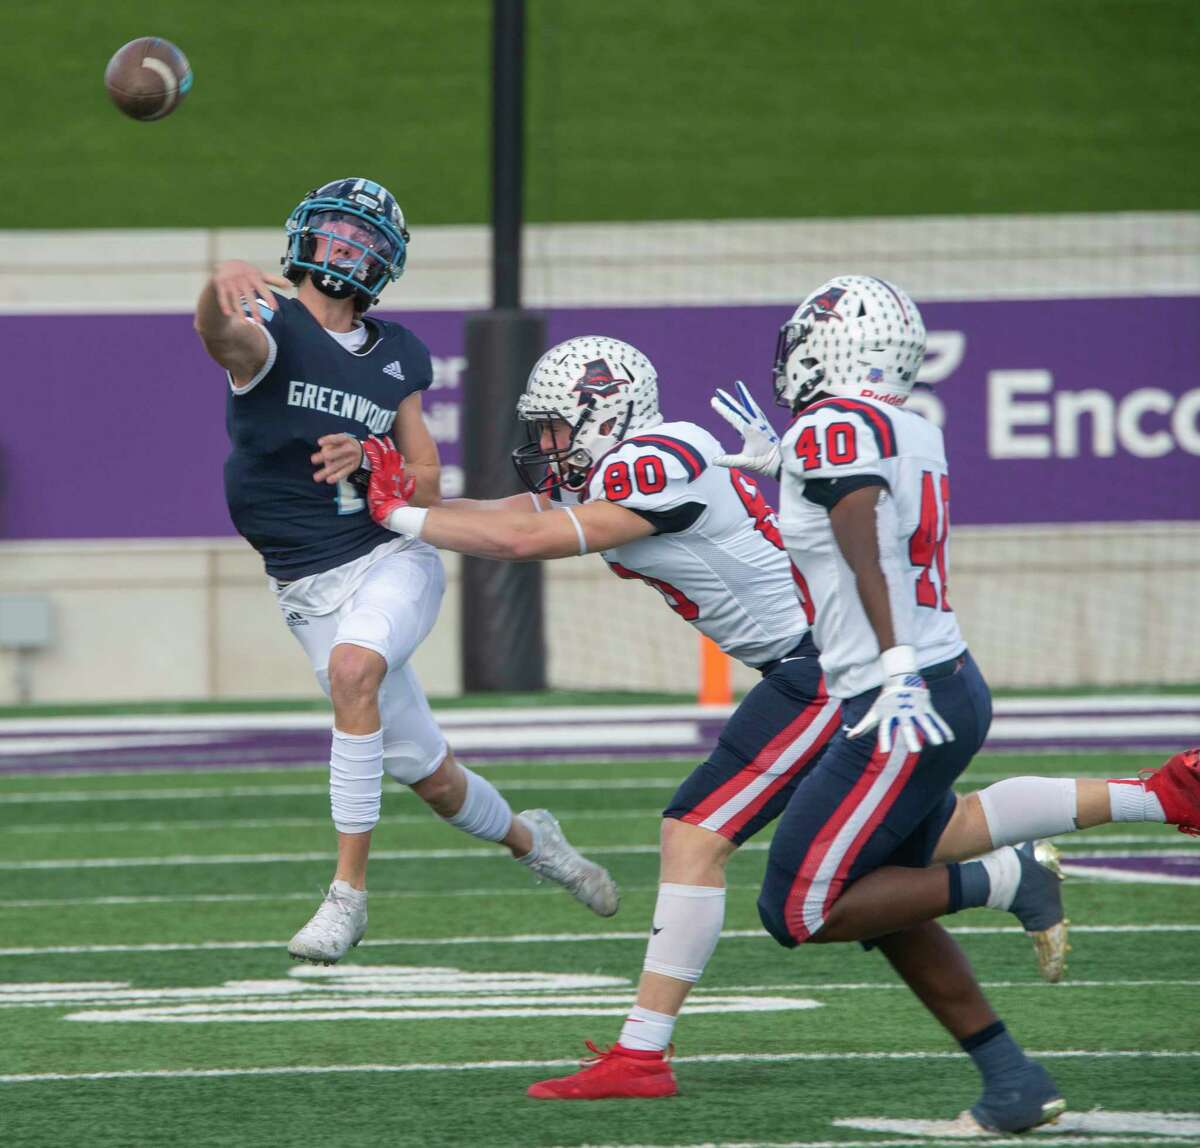 Greenwood's Ty Flowers gets a pass away as Aubrey's Jett Runion chases him out of the pocket 11/21/2020 at Anthony Field on Abilene Christian University campus. Tim Fischer/Reporter-Telegram